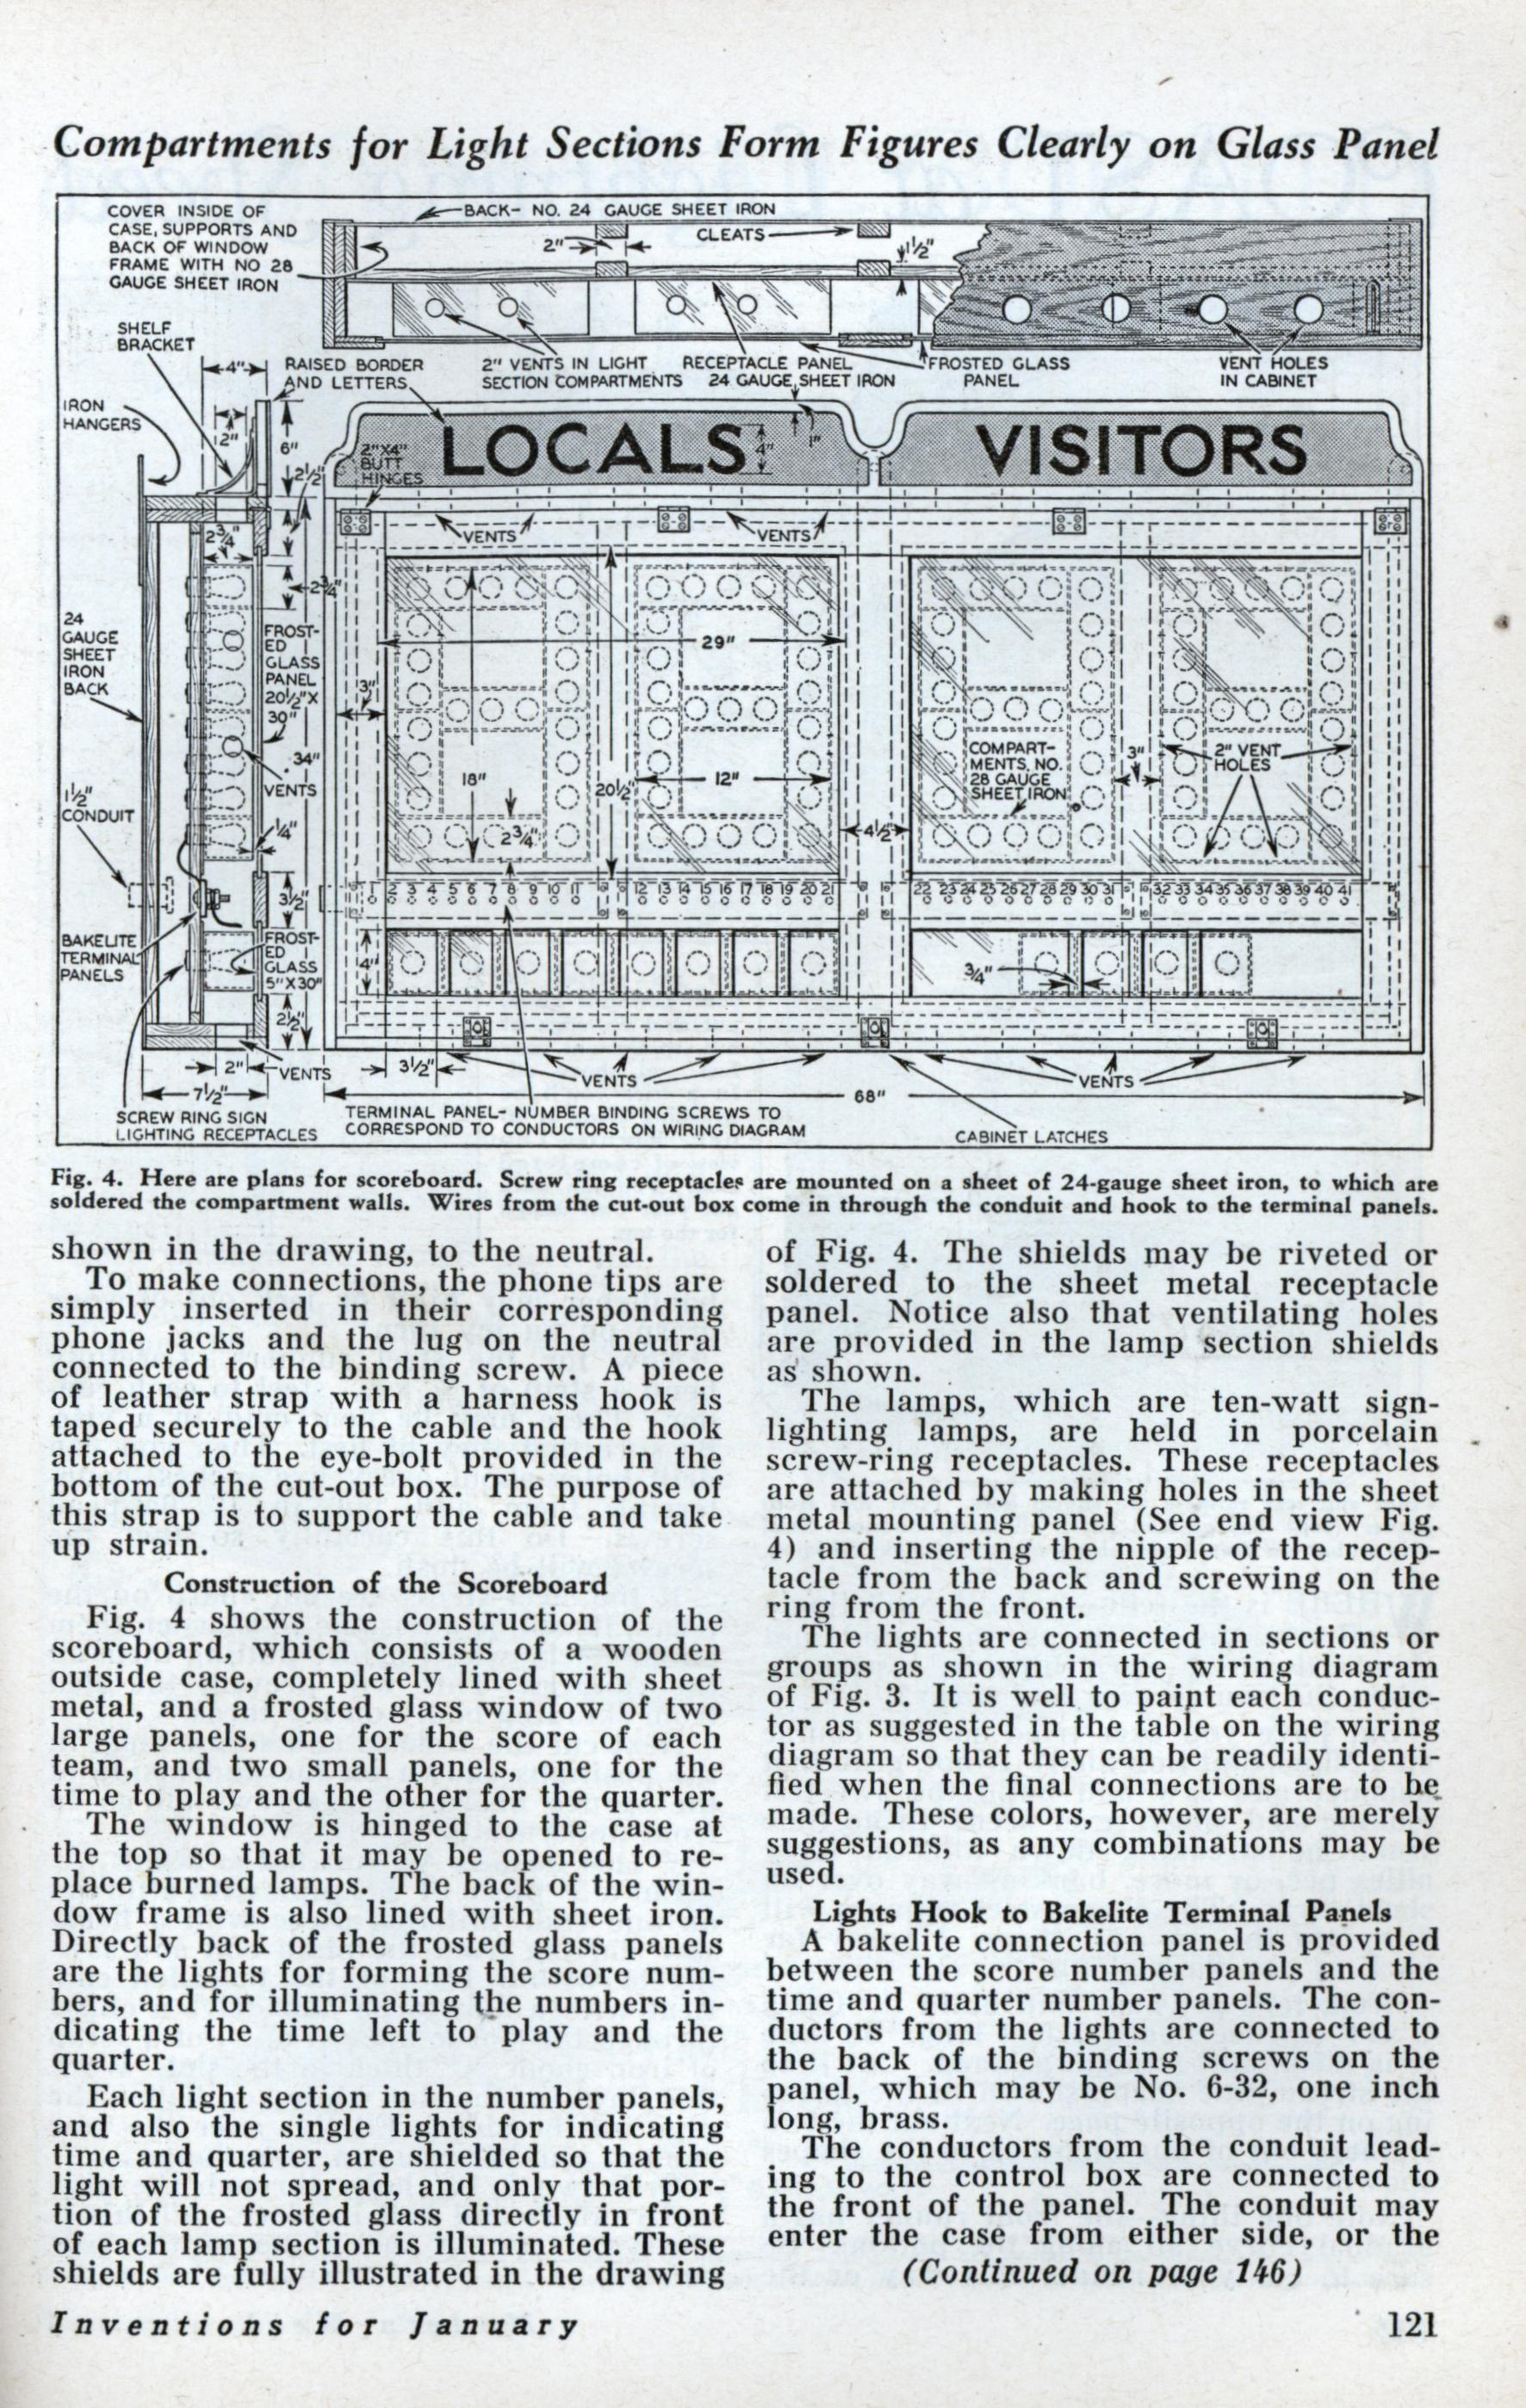 Build This Basketball Scoreboard For Your Gym Modern Mechanix Page 3 Wiring Diagrams Jan 1933